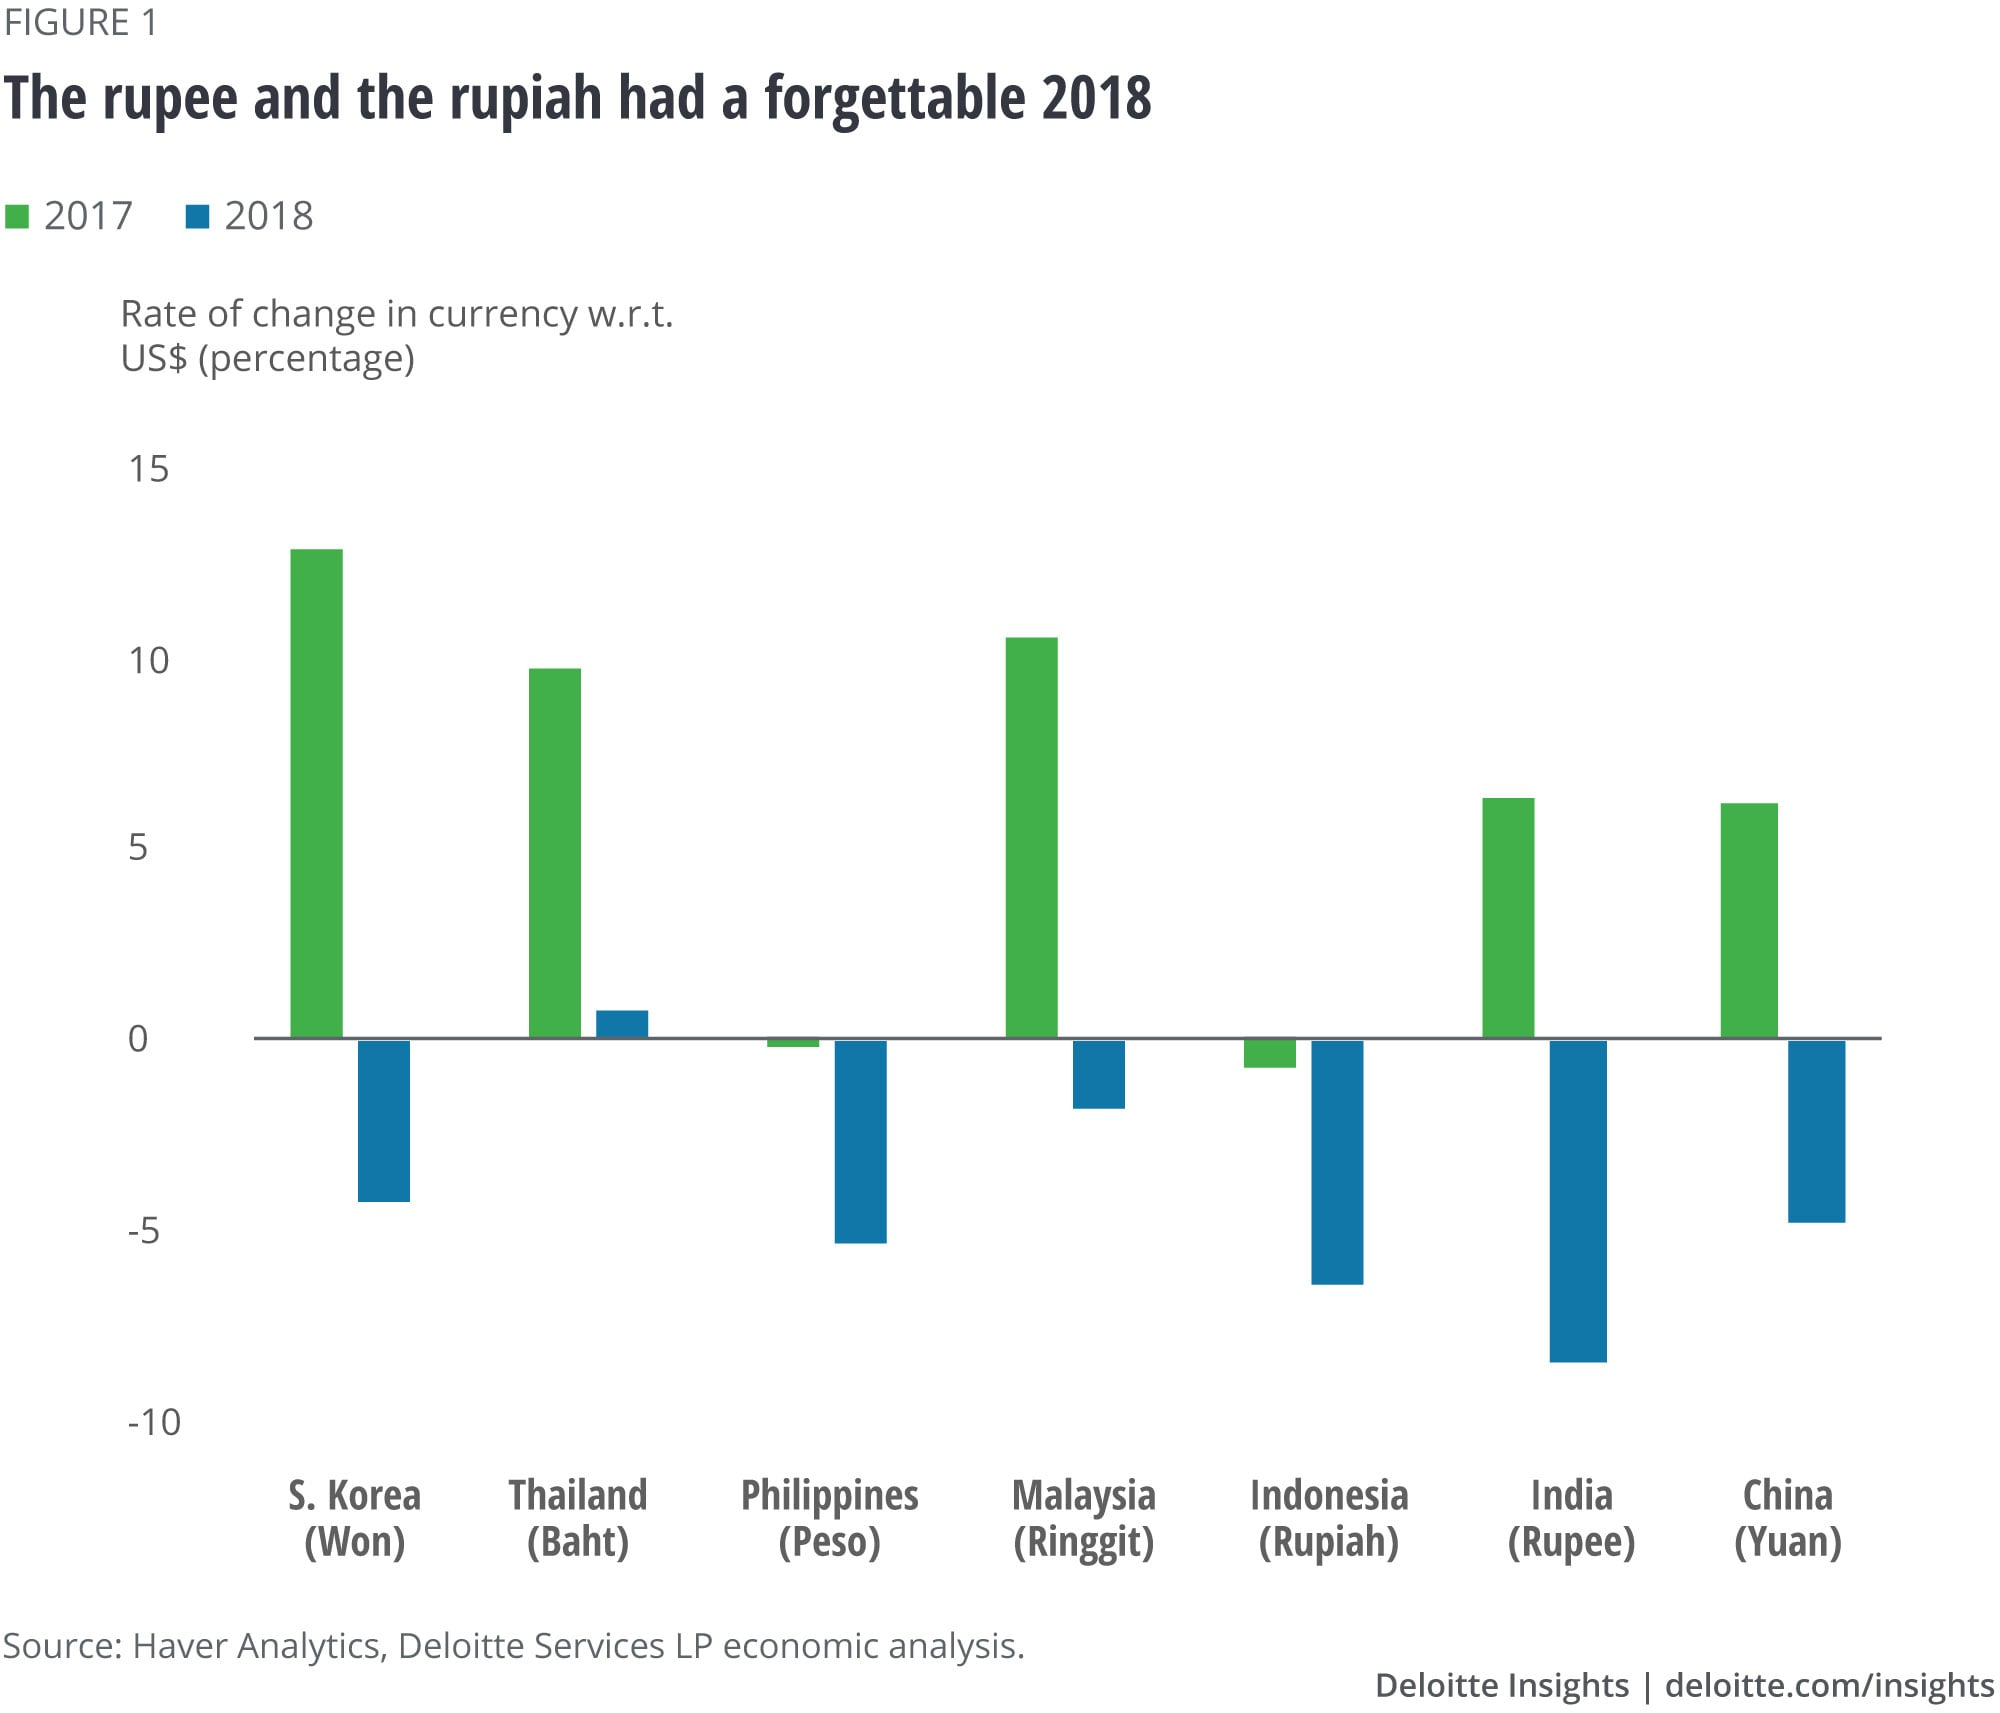 The rupee and the rupiah had a forgettable 2018